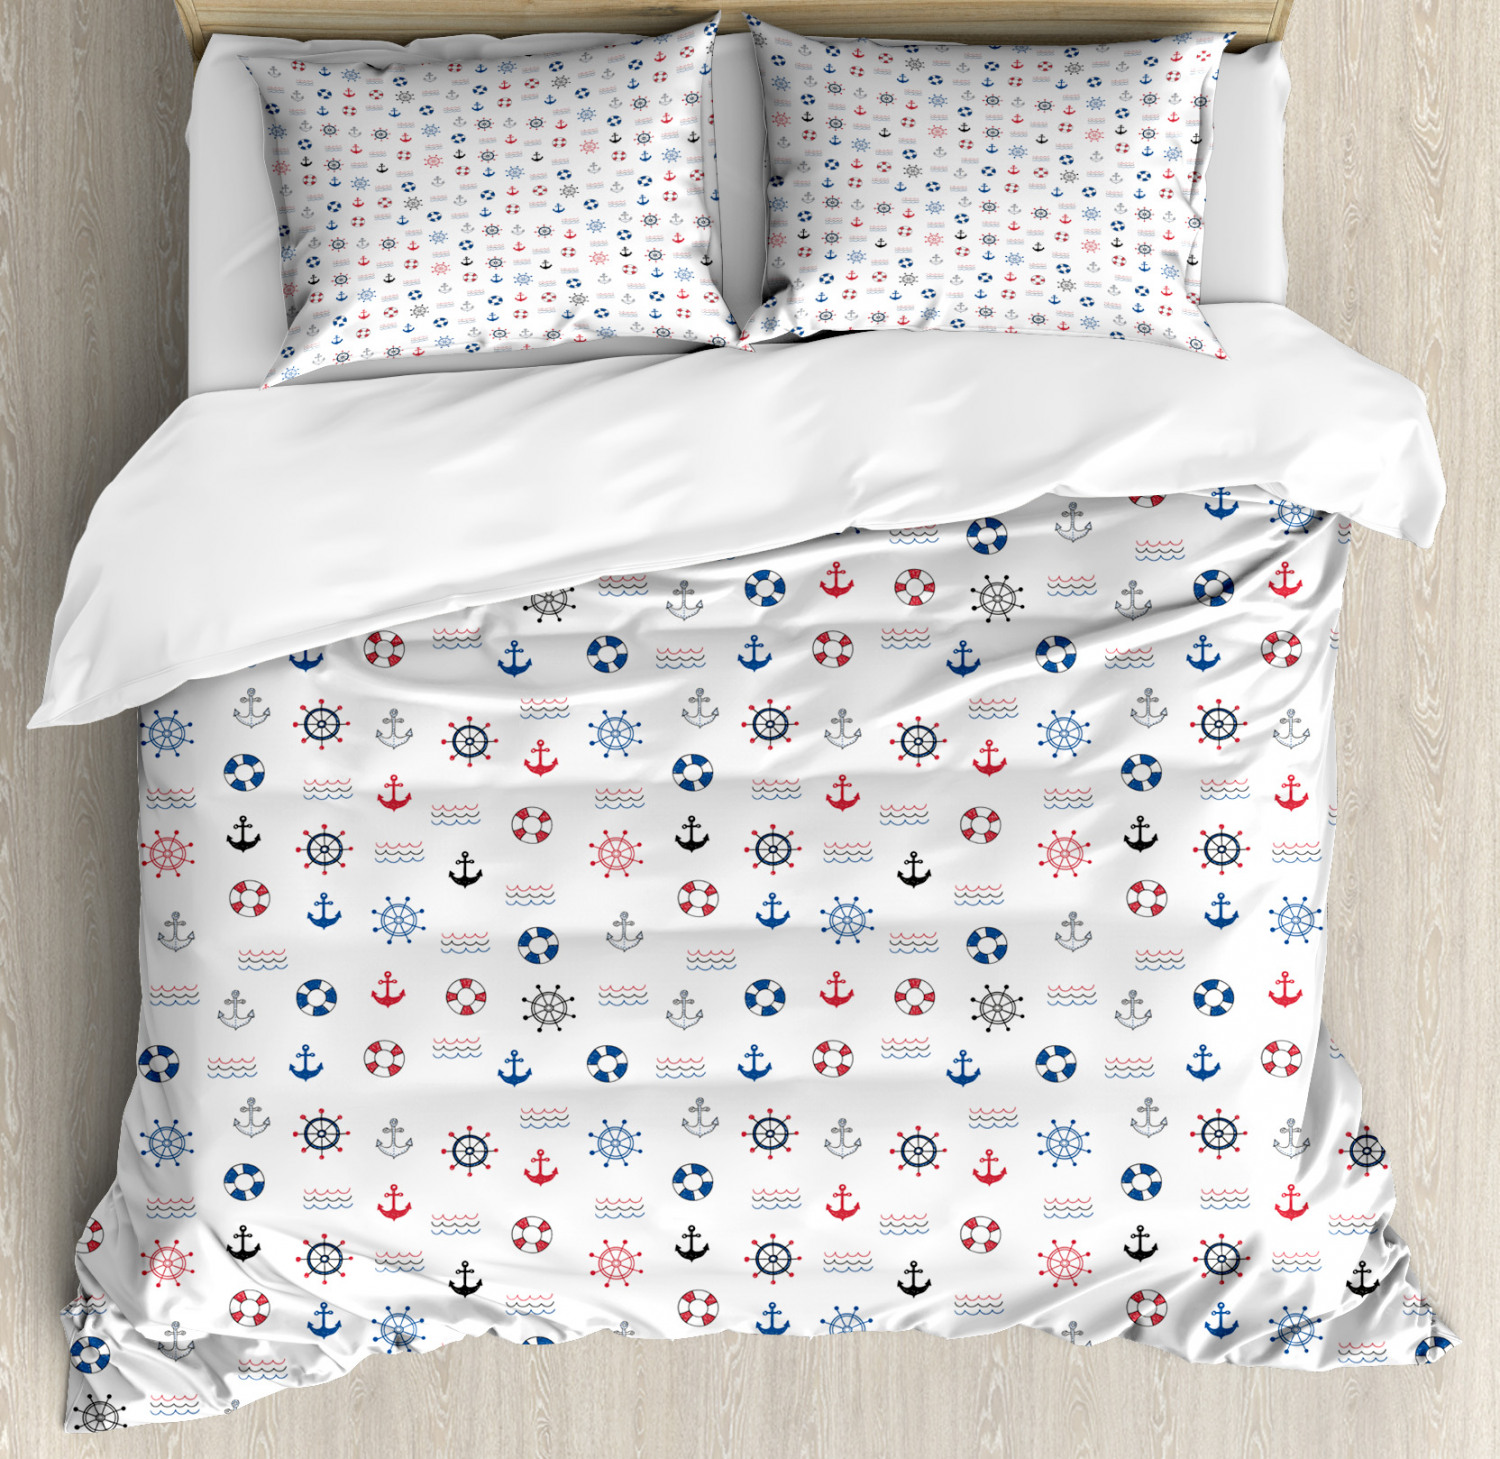 Anchor Duvet Cover Set with Pillow Shams Marine Nautical Wheel Print